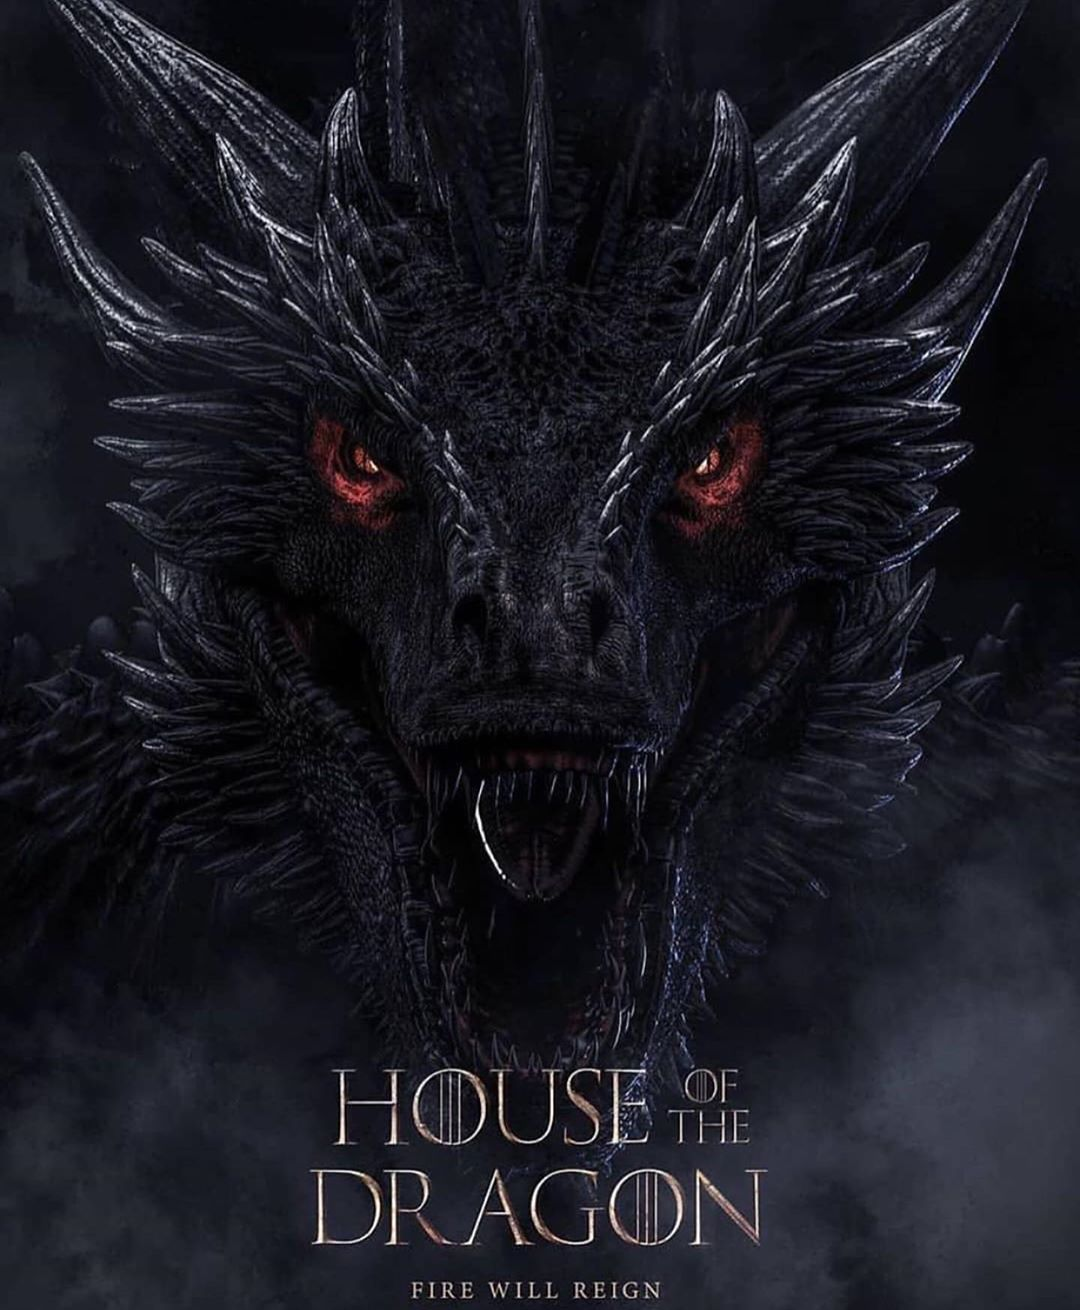 Game Of Thrones On Instagram House Of The Dragon Fan Art Are You Ready For T In 2020 Balerion The Black Dread Dragon Tattoo Game Of Thrones Game Of Thrones Tattoo